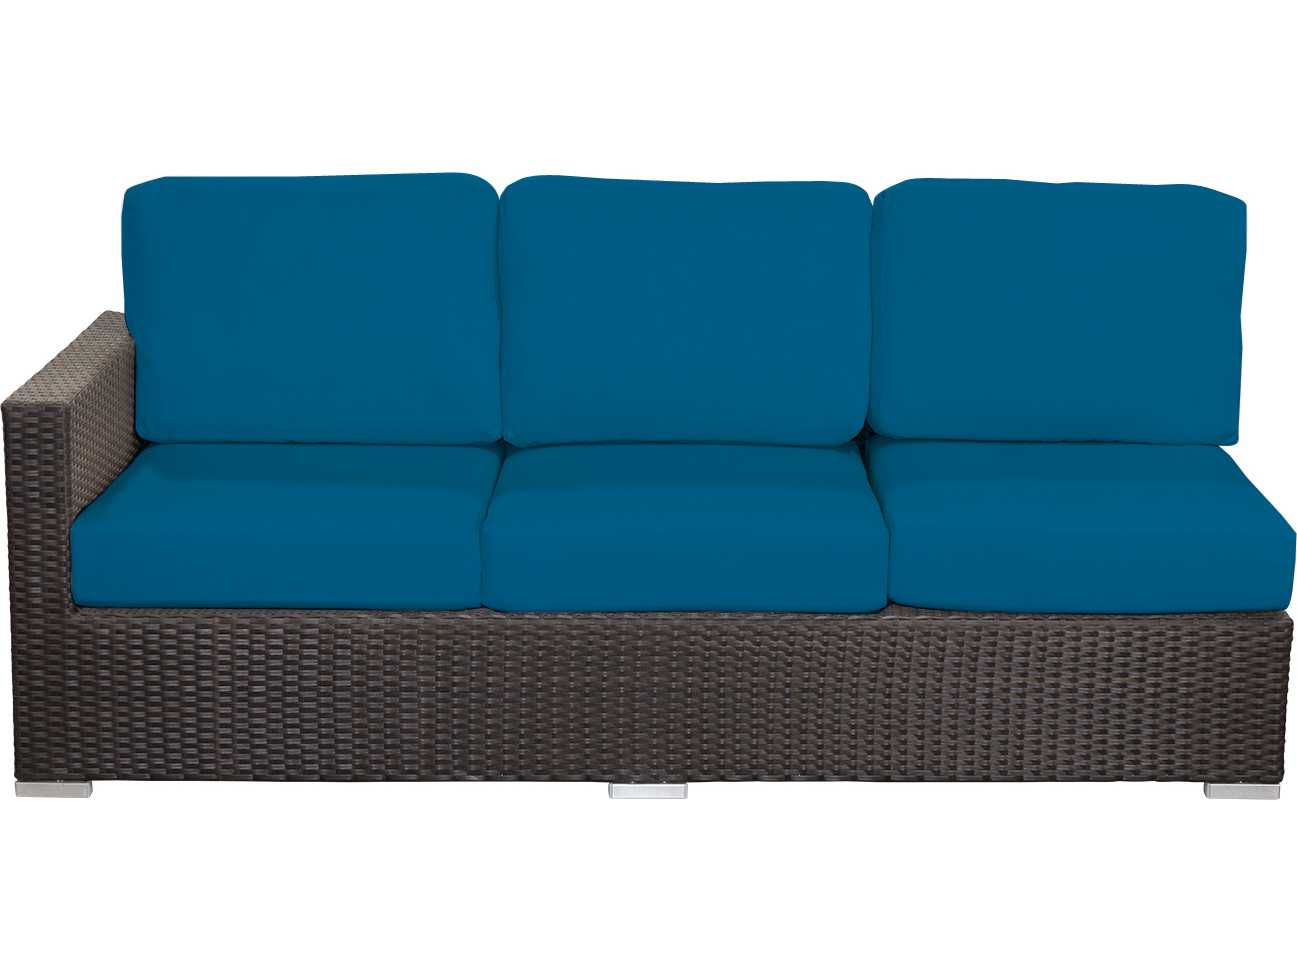 source outdoor furniture lucaya left arm sofa replacement cushion so 2012 113c. Black Bedroom Furniture Sets. Home Design Ideas